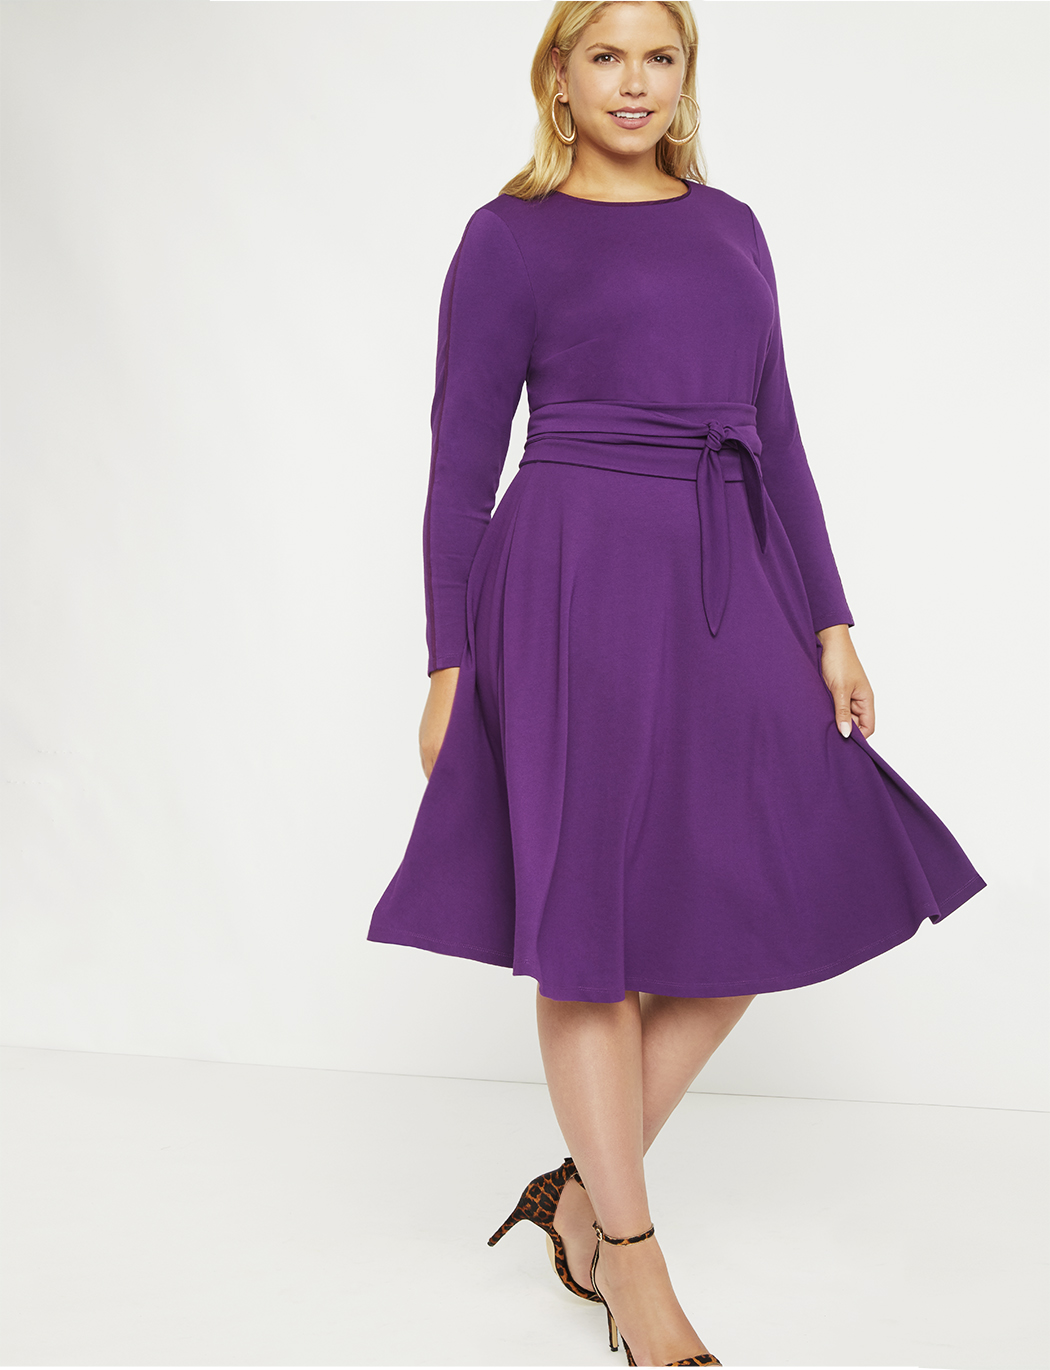 Long Sleeve Fit and Flare Dress | Women\'s Plus Size Dresses | ELOQUII